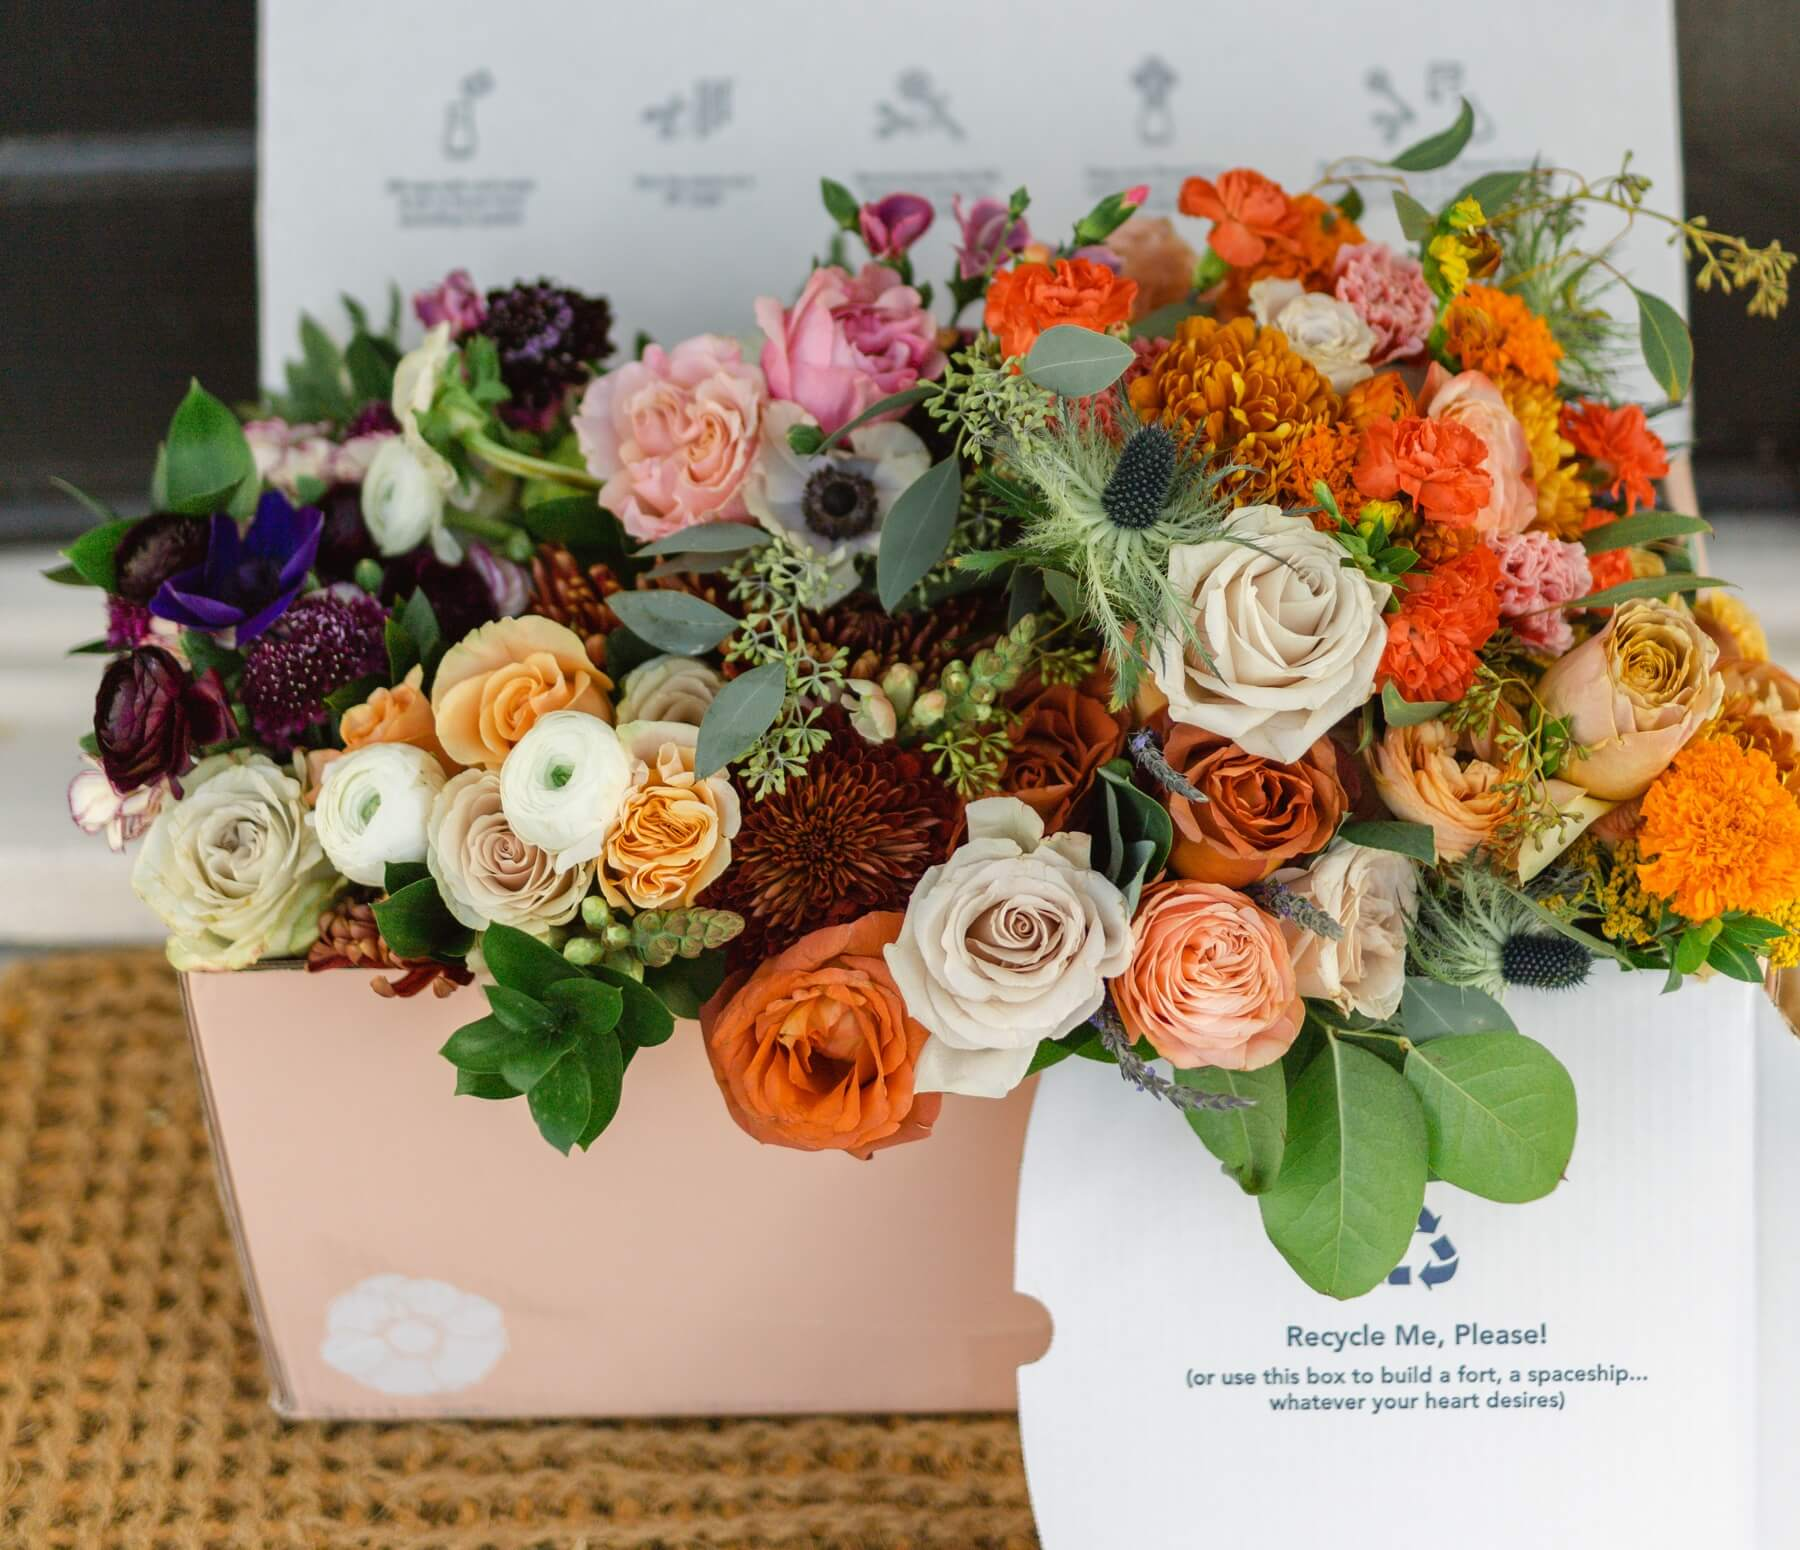 UrbanStems flower subscription service